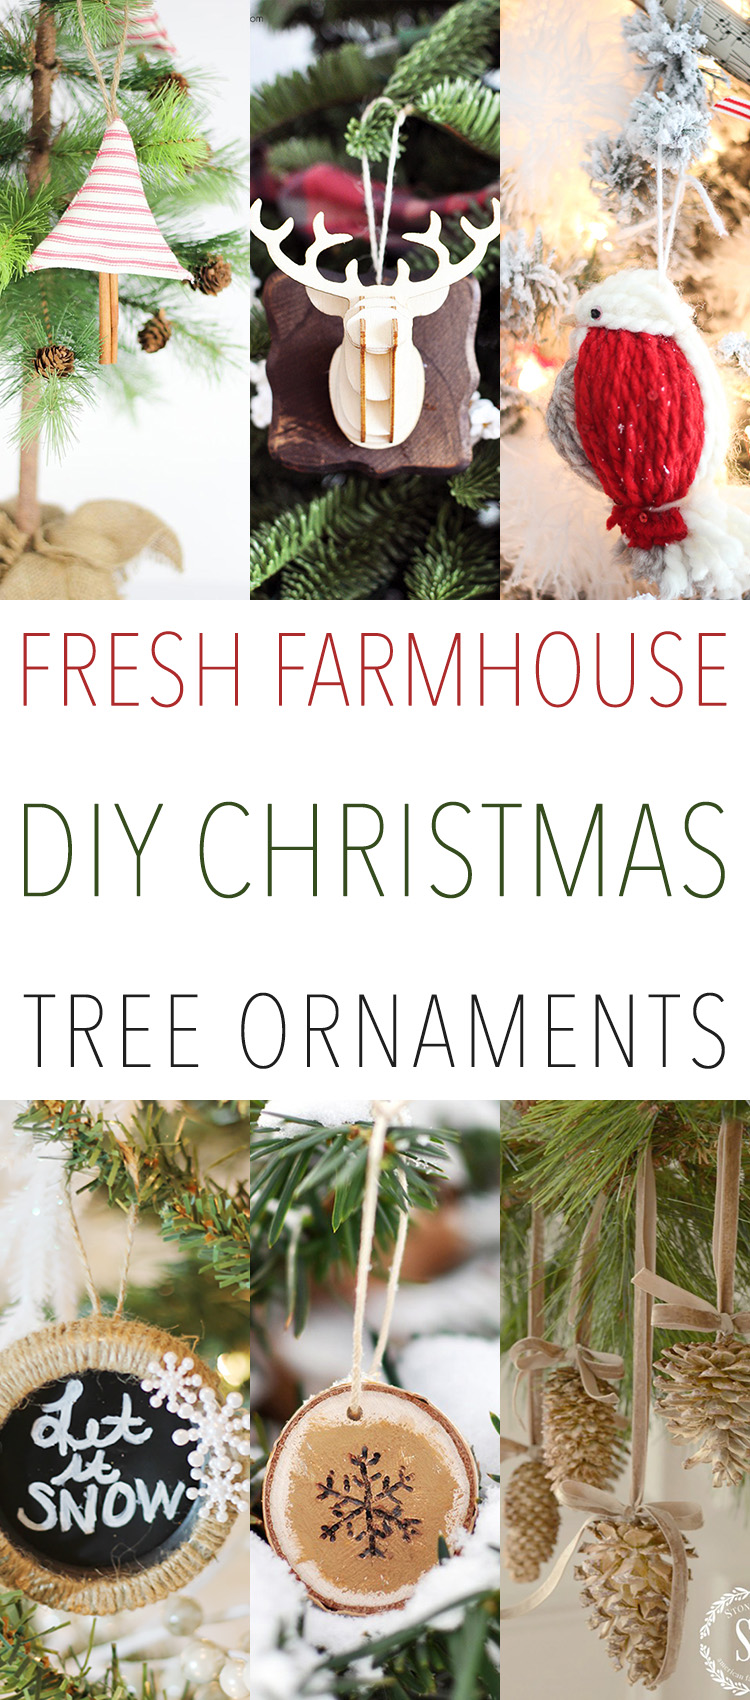 http://thecottagemarket.com/wp-content/uploads/2016/10/FarmhouseChristmasOrnament-TOWER-0001.jpg